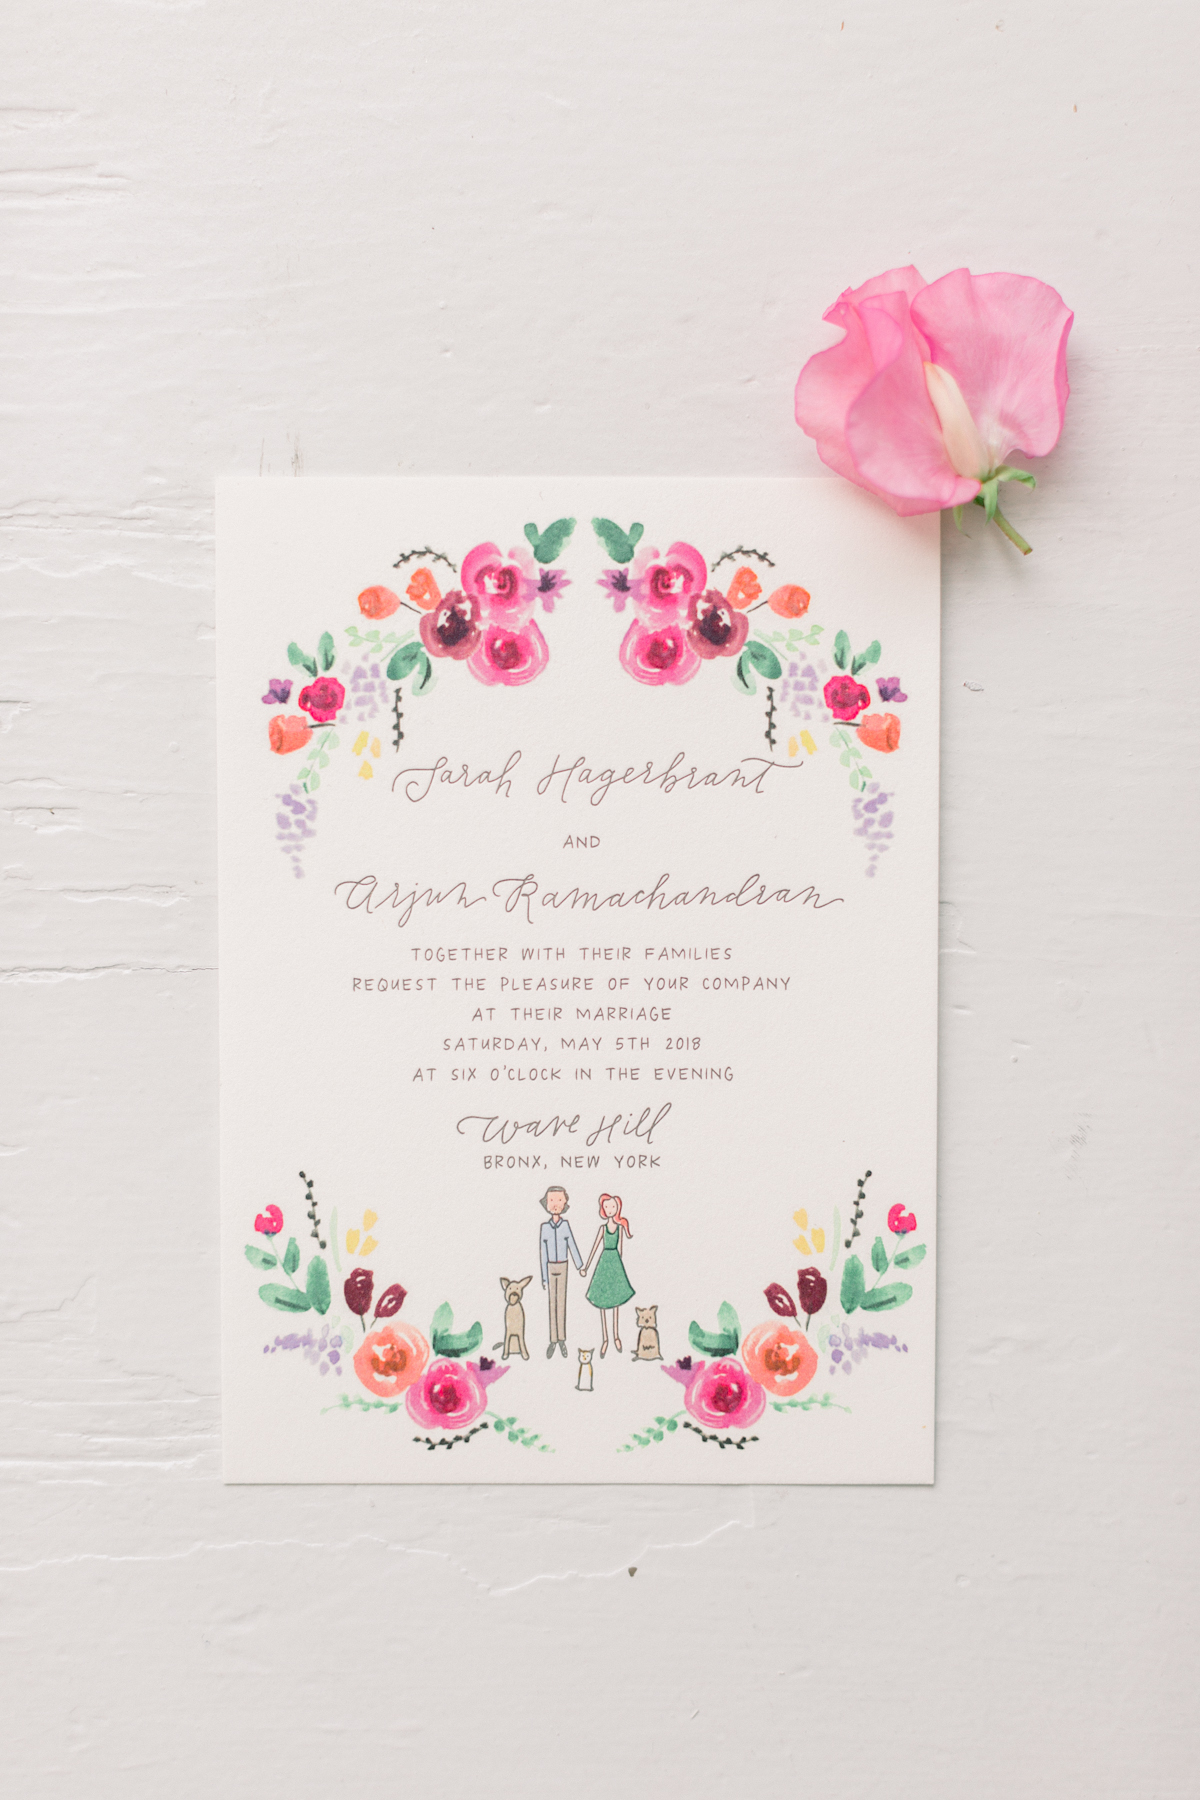 Wave Hill Wedding, photography by Mademoiselle Fiona, wedding planning by Ang Weddings and Events, flowers by Denise Fasanello, invitation by Printerette